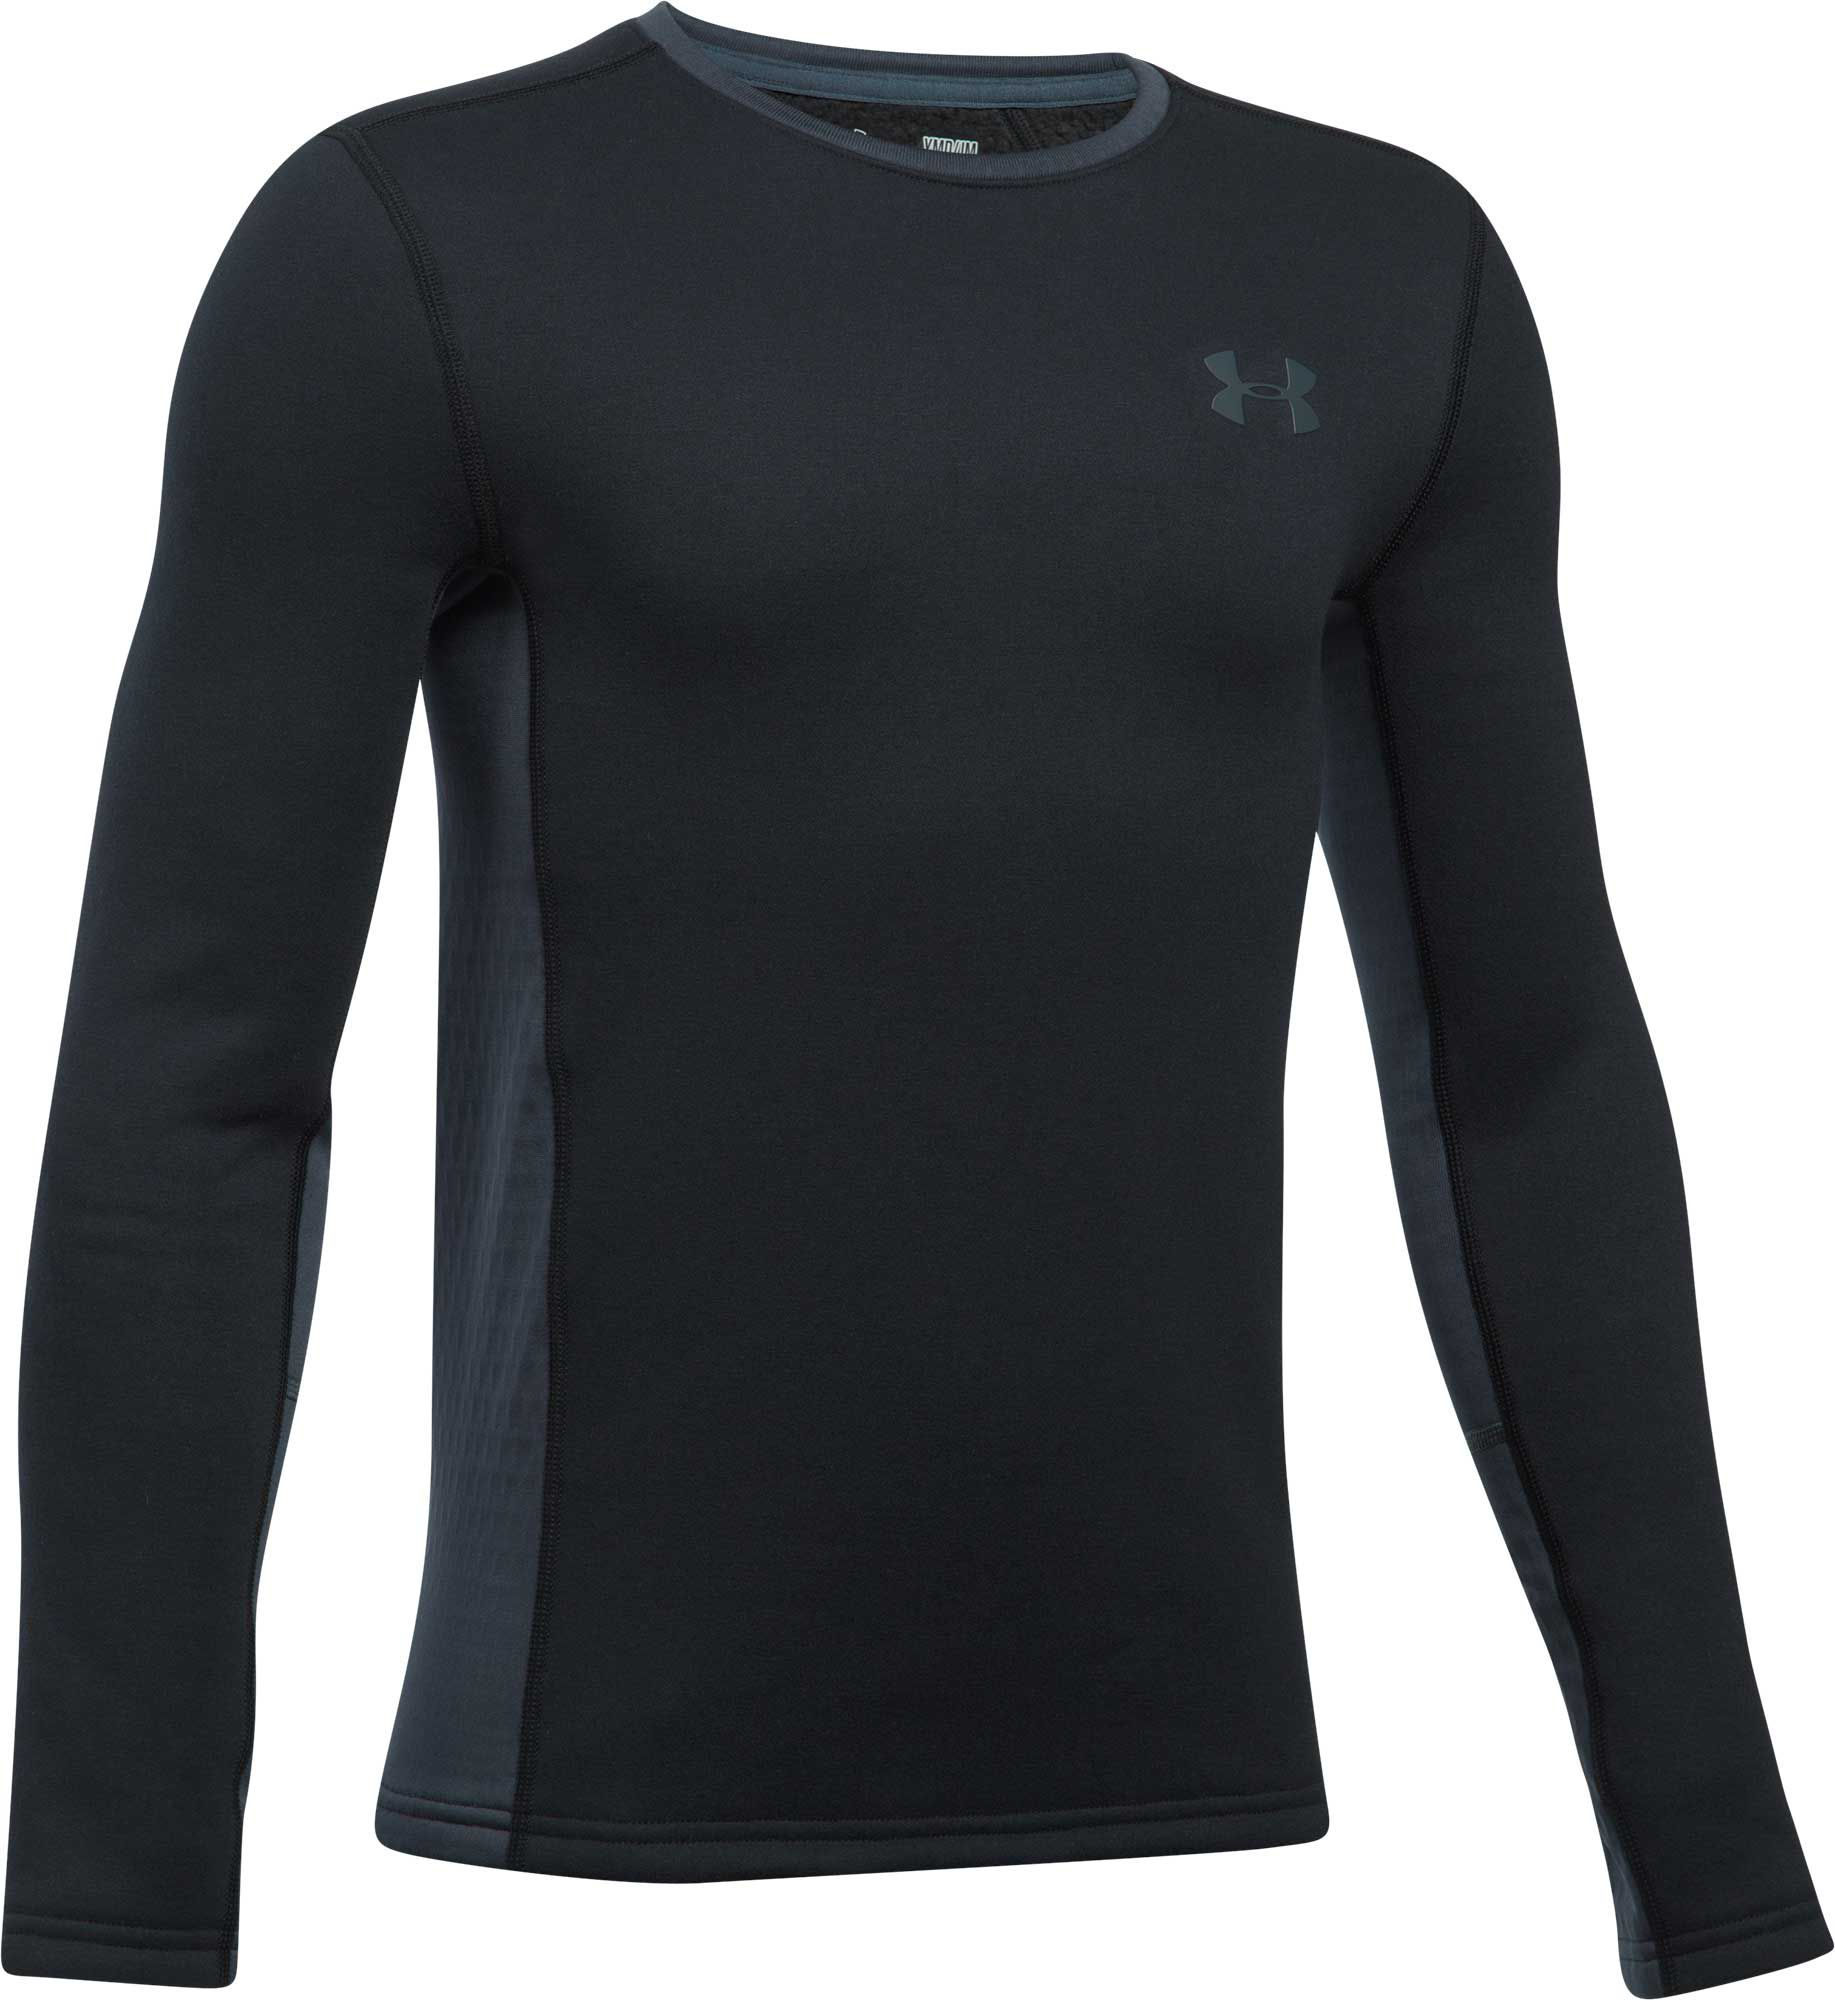 Under Armour Youth Extreme Base Layer Long Sleeve Shirt, Boys', Small, Black